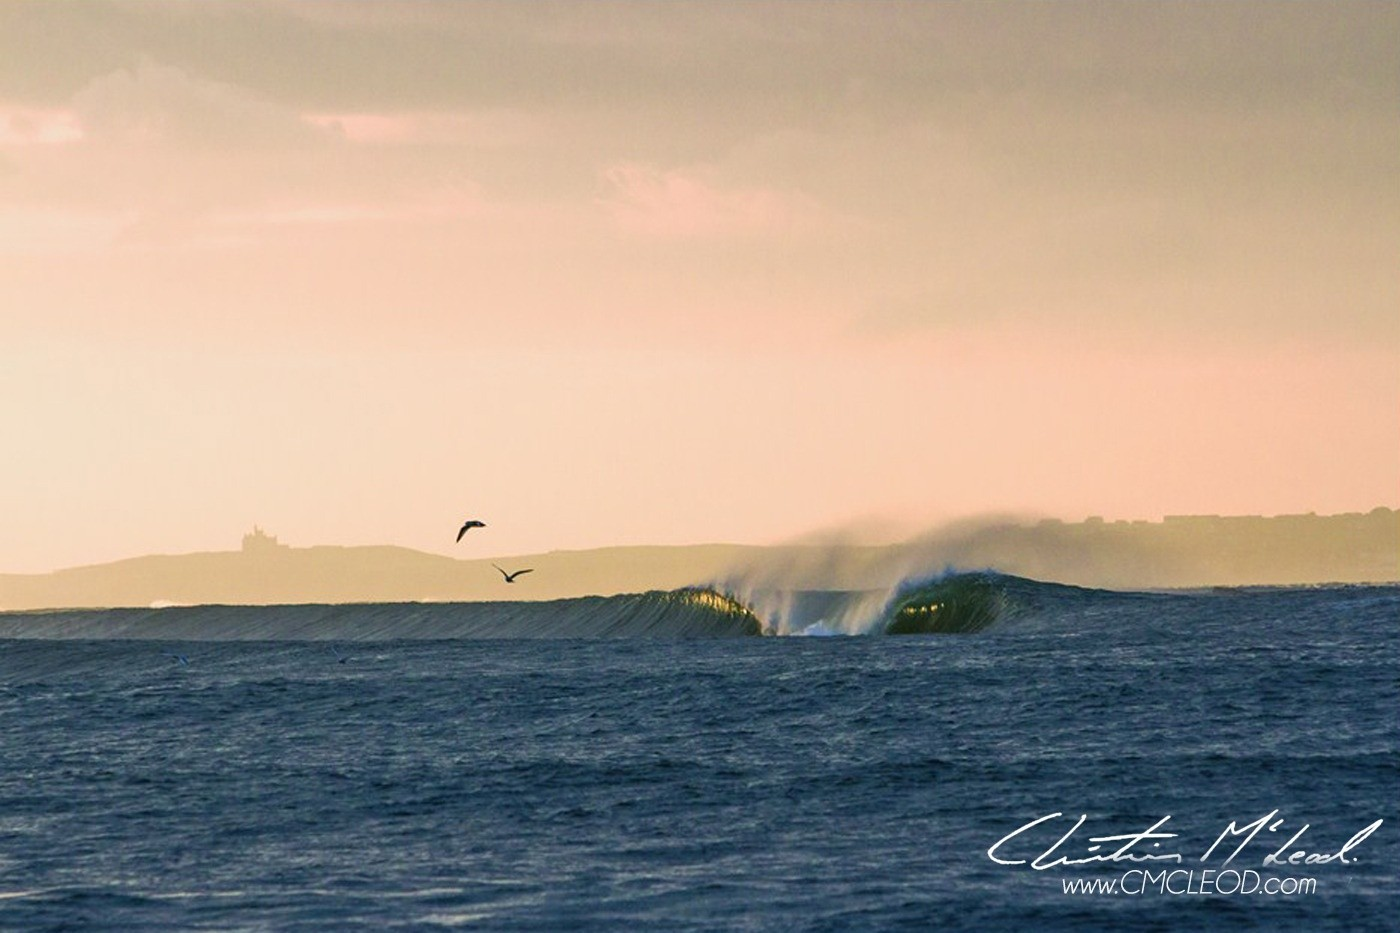 ChristianMcLeod's photo of Bundoran - The Peak